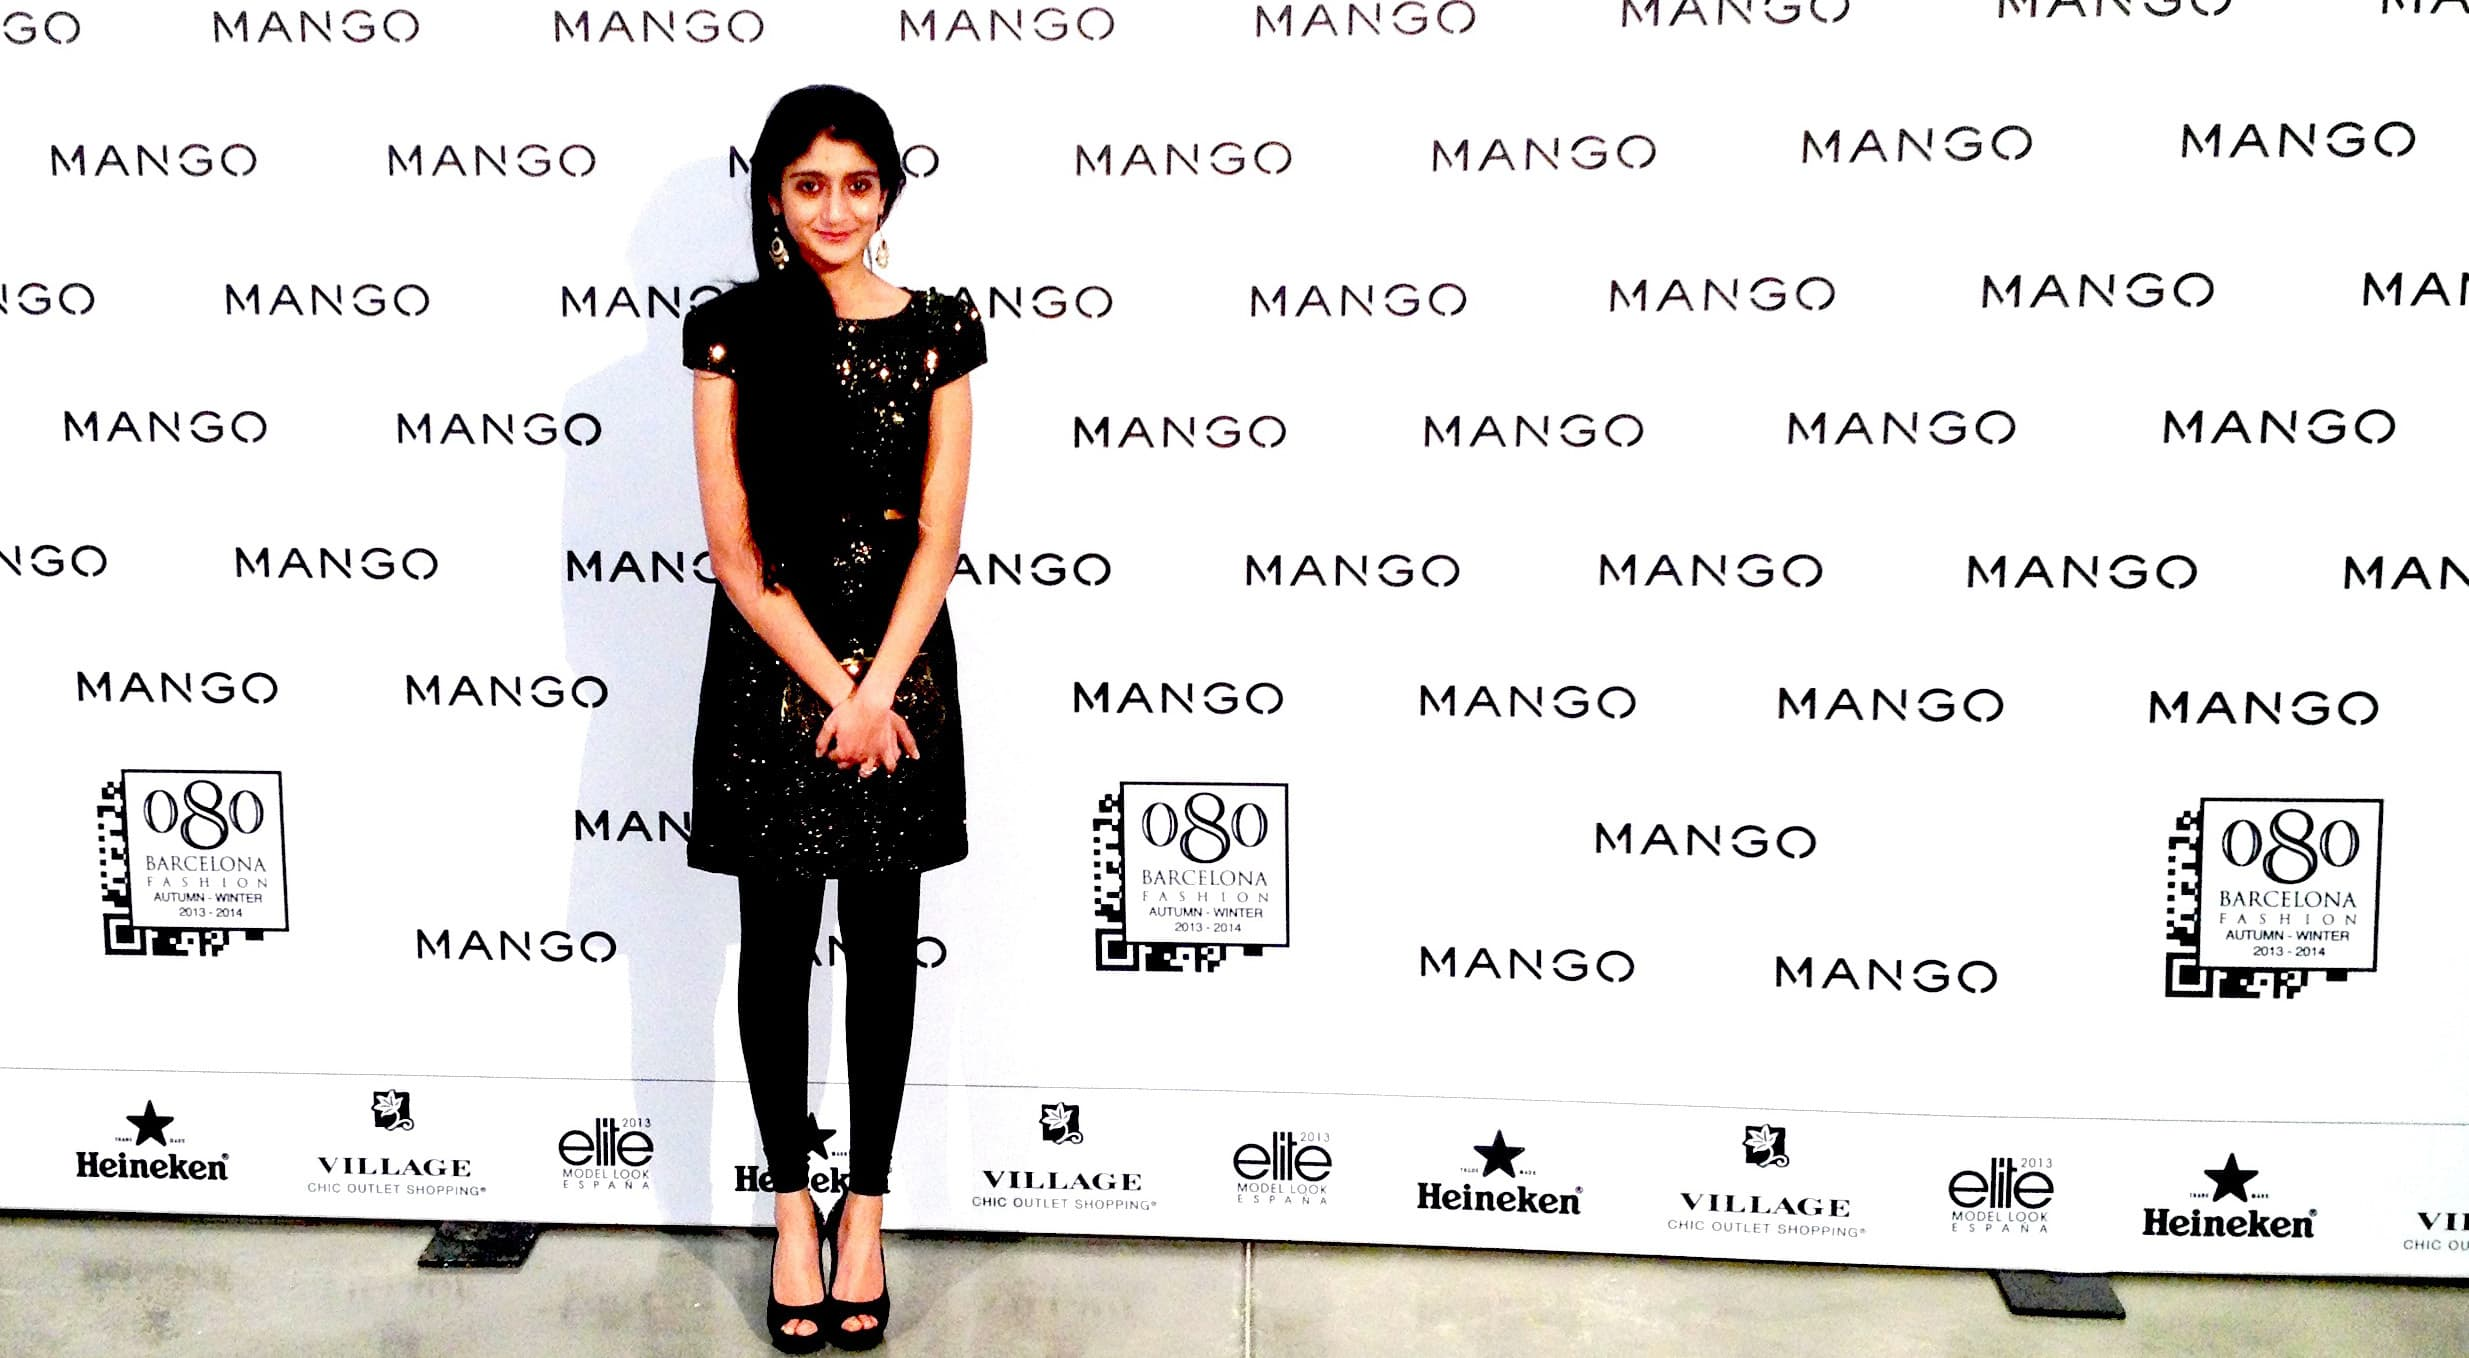 Laraib at the 080 Barcelona Fashion Week — Photograph courtesy Laraib Atta